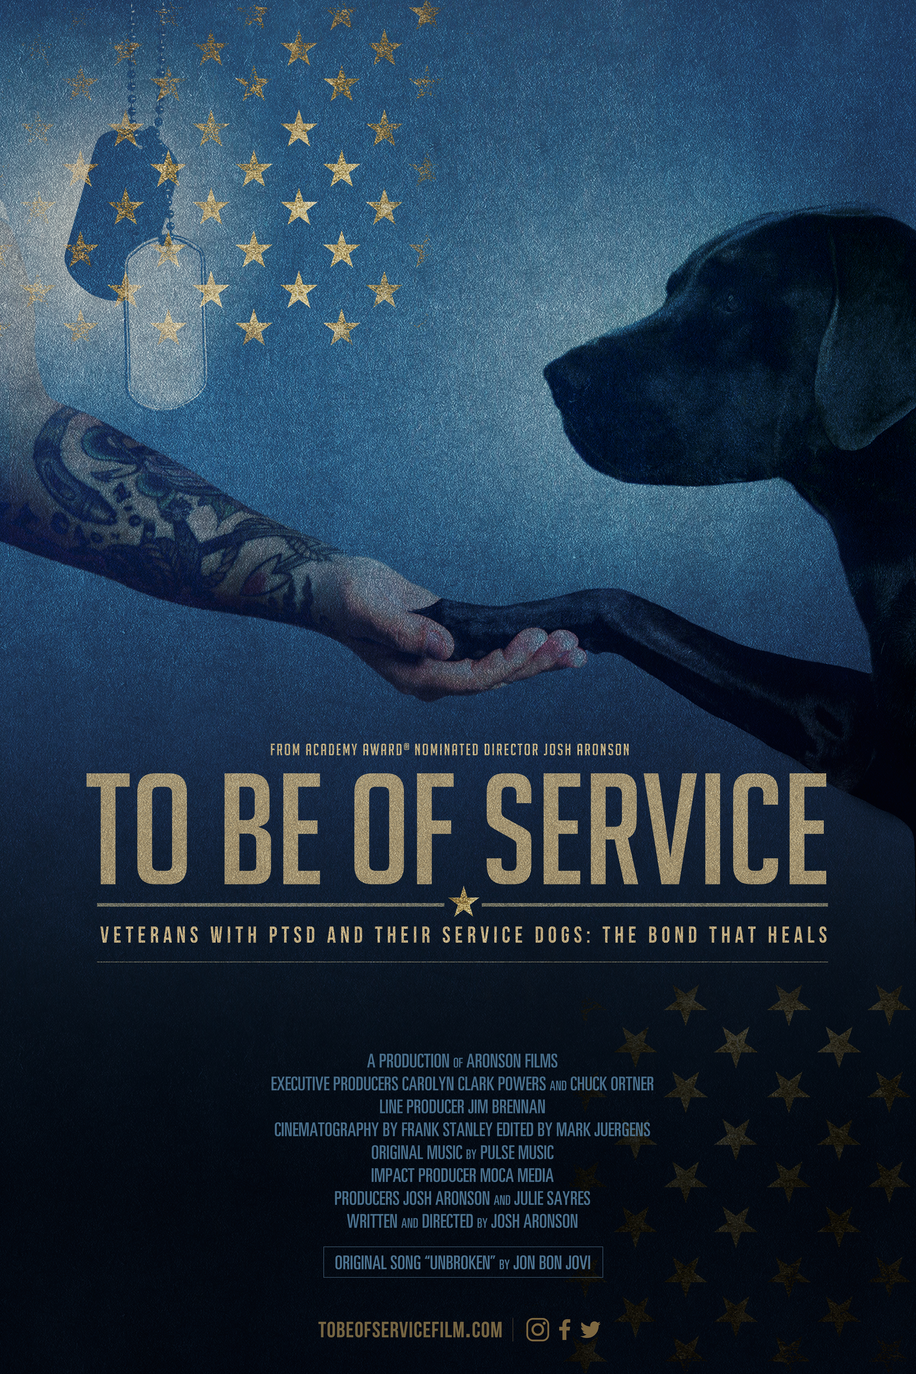 To Be of Service: Theatrical Poster